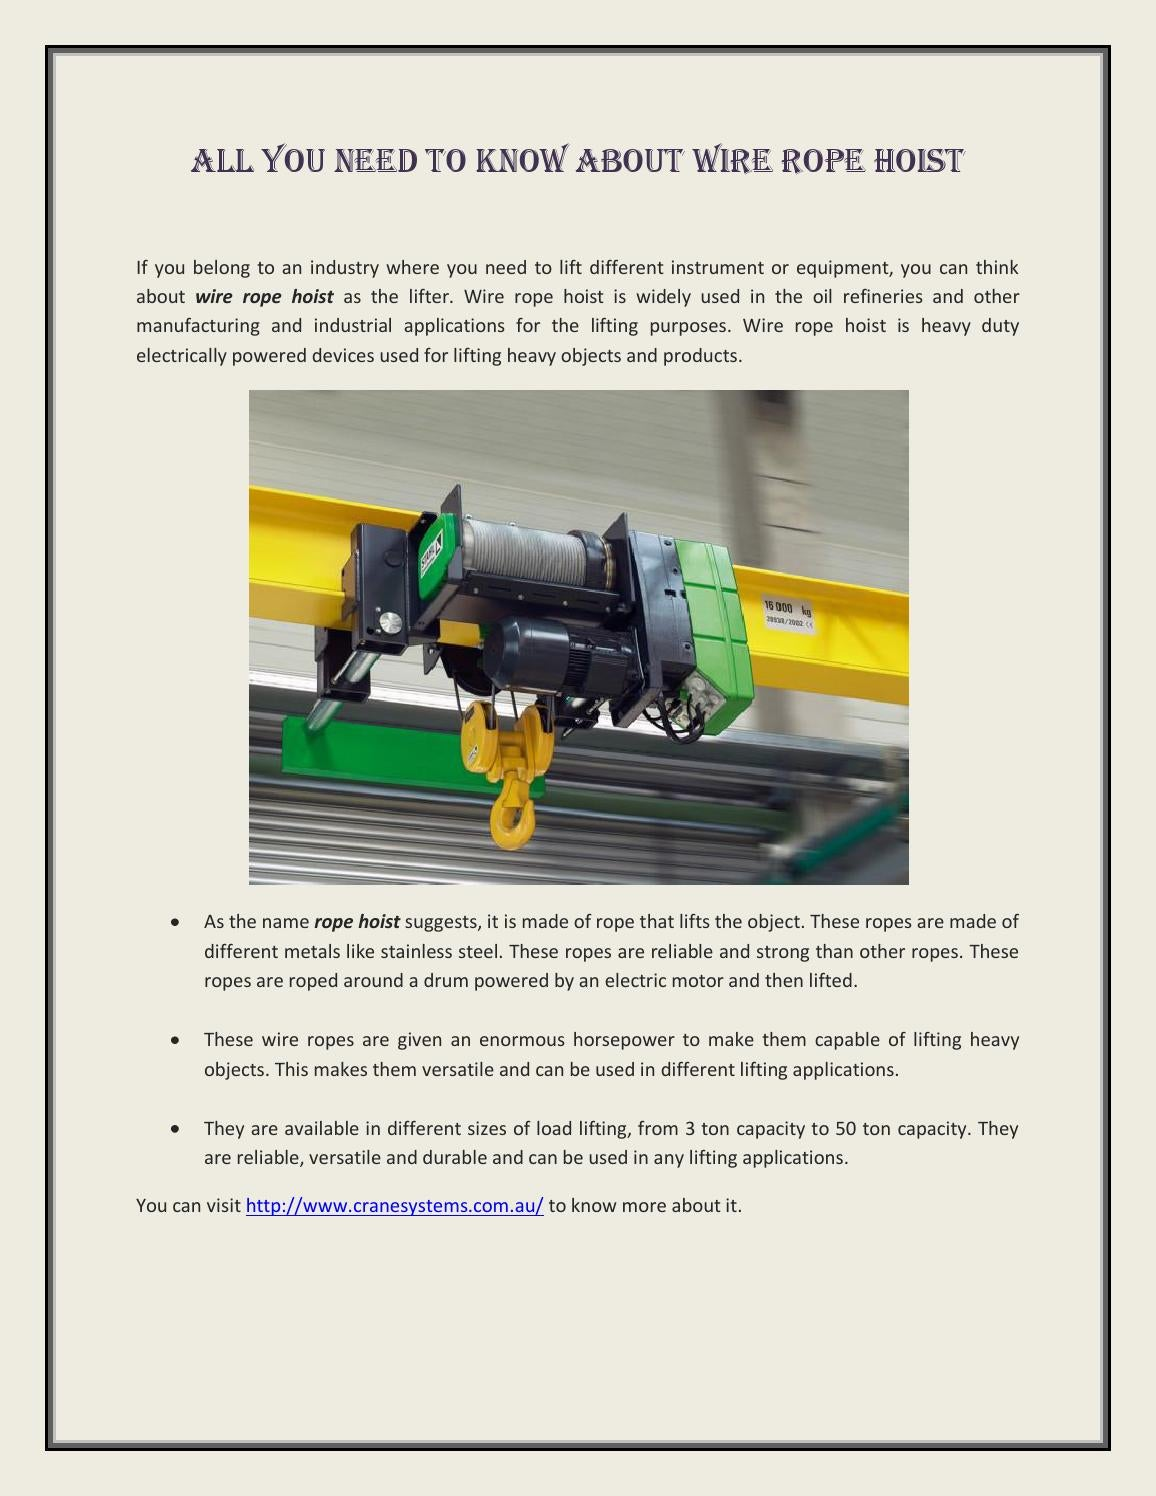 Wire rope hoist all you need to know about by gantrycraneservice - issuu